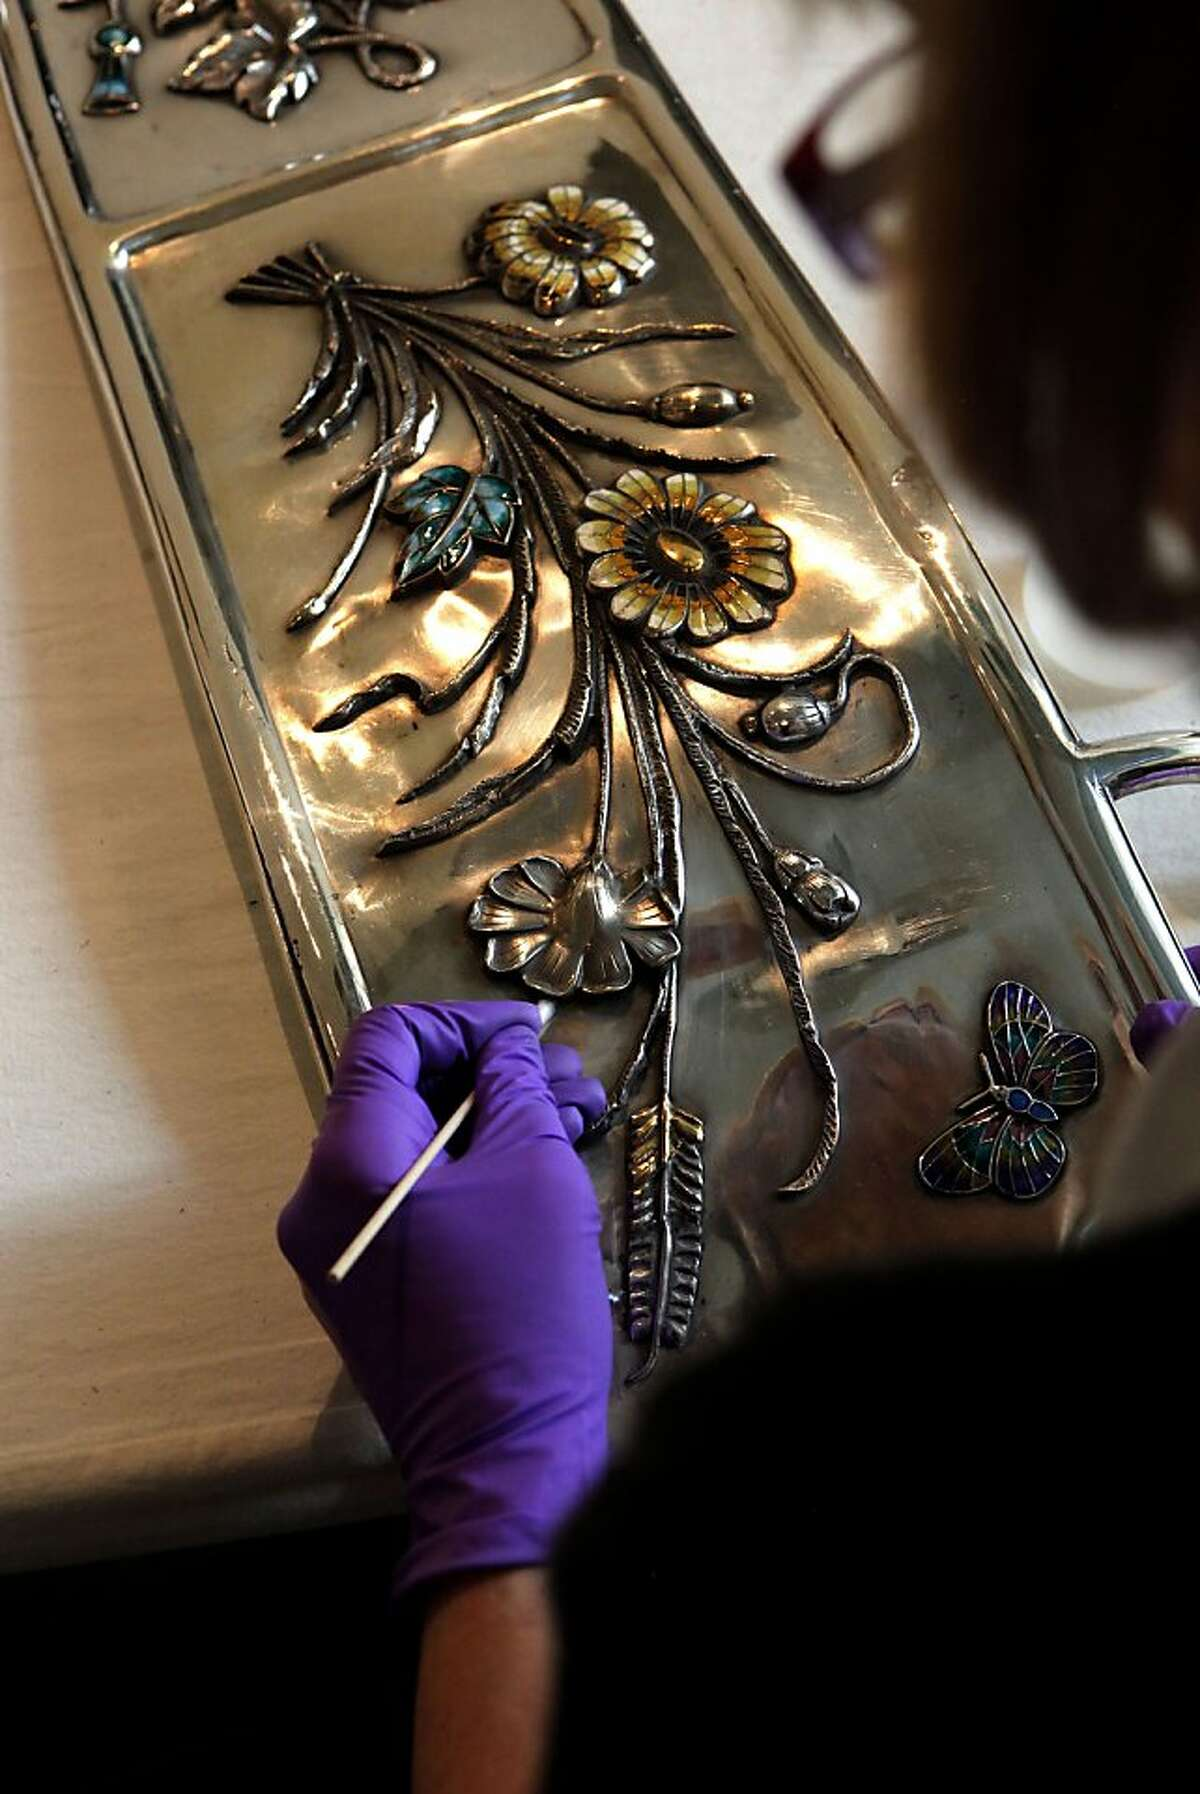 Donna Stevens, a conservator for the V&A Museum in London works on polishing the silver parts for the coach. A silver coach built in 1907 by the Bombay Coach co., was once used by the Maharaja of the Kingdom of Bhavnagarpar India, is part of new exhibit, Maharaja:The Splendor of India's Royal Courts, being installed at the Asian Art Museum, on Friday October 7, 2011, in San Francisco, Ca. This is first time the coach will be on display in the United States. The Asian Art MUseum, faced with a financial crisis, entered into a deal that makes the city of San Francisco liable for its $98 million debt. Now owners say they're trying to turn the museum around with exhibitions designed to appeal to a larger audience, including one drawn up by Pixar animator, Sanjay Patel.